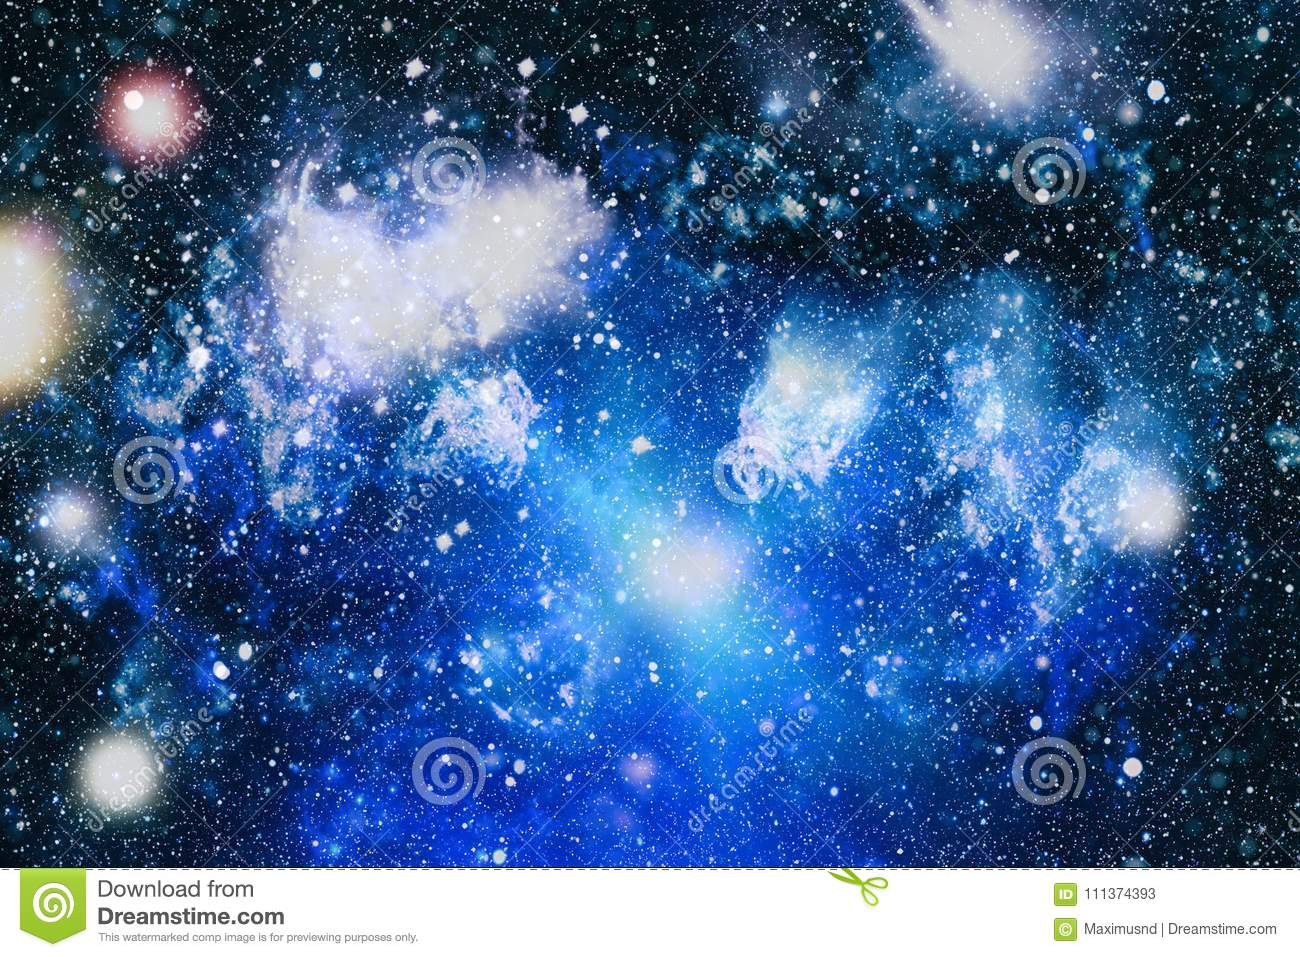 Awesome Nebula In Deep Space Galaxy And Nebula Abstract Space Background Stock Illustration Illustration Of Comet Dust 111374393